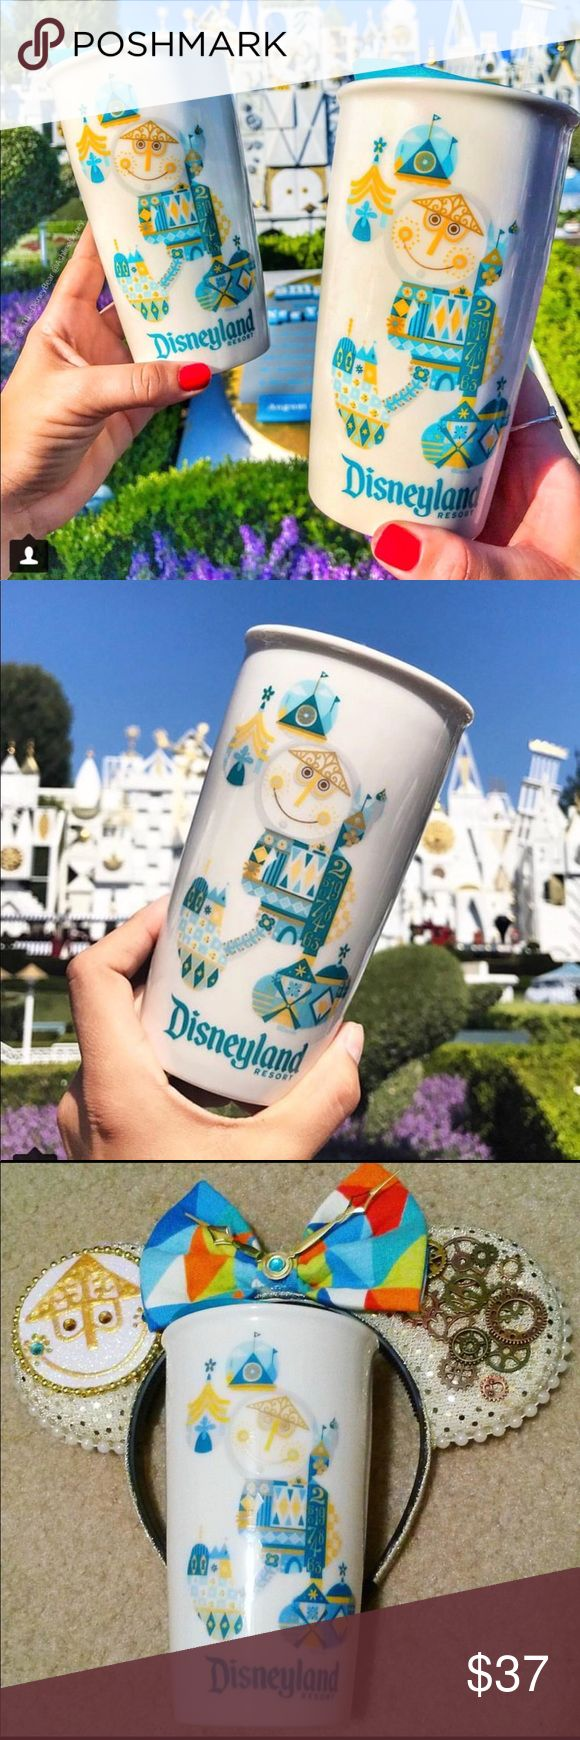 "New STARBUCKS DISNEYLAND ""IT'S A SMALL WORLD"" MUG ( NEW ""JUST RELEASED SEPTEMBER (2017) FOR ""DISNEYLAND ONLY"" )  New STARBUCKS DISNEYLAND (2017) ""IT'S A SMALL WORLD"" DOUBLE-WALLED CERAMIC TUMBLER MUG  THESE ARE ONLY AVAILABLE AT THE ""STARBUCKS COFFEE LOCATION"" INSIDE THE ""DISNEYLAND RESORT PARK"" MAKING THEM VERY EXCLUSIVE !!    THESE SAME BEAUTIFUL MUGS HAVE BEEN SELLING ON MANY ""ONLINE SELLING SITES"" LIKE : ( EBAY - AMAZON - ETSY ) AT VERY HIGH PRICES STARTING AT : ( $49.95 - $55.00…"